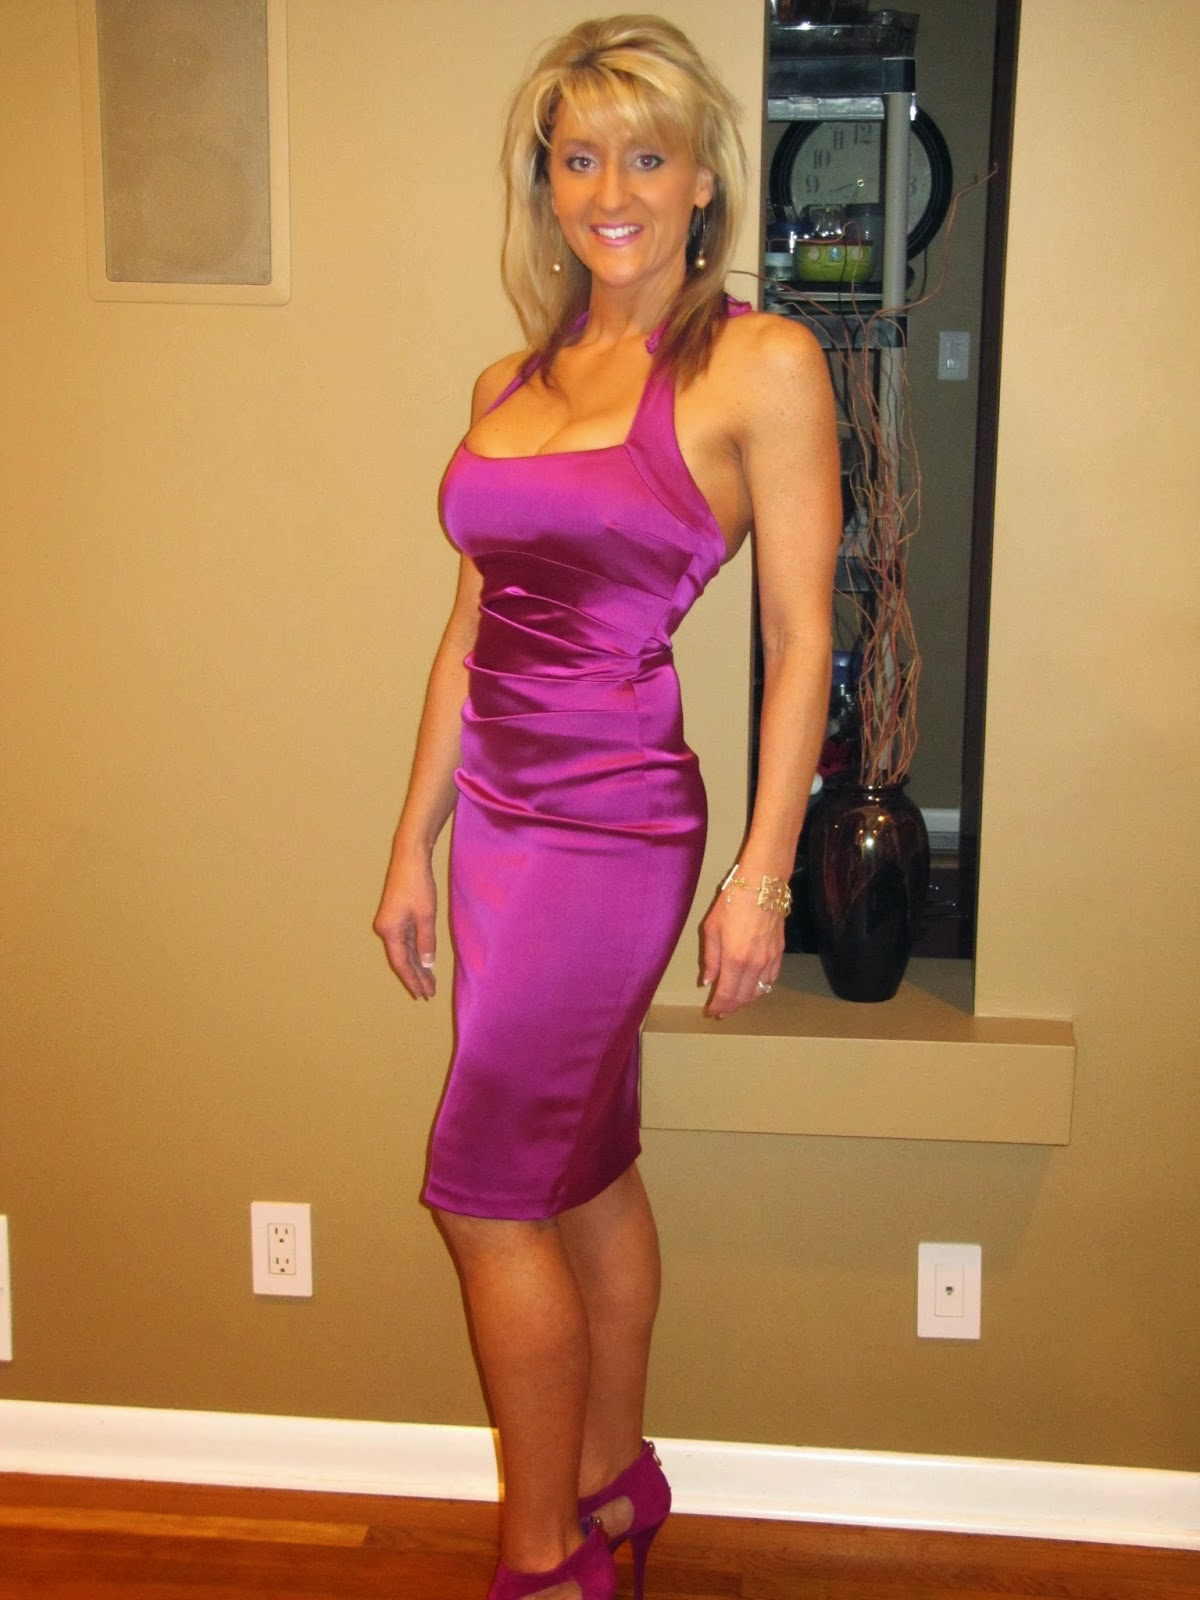 Hot Wife Of The Month - | 365daysoflovee